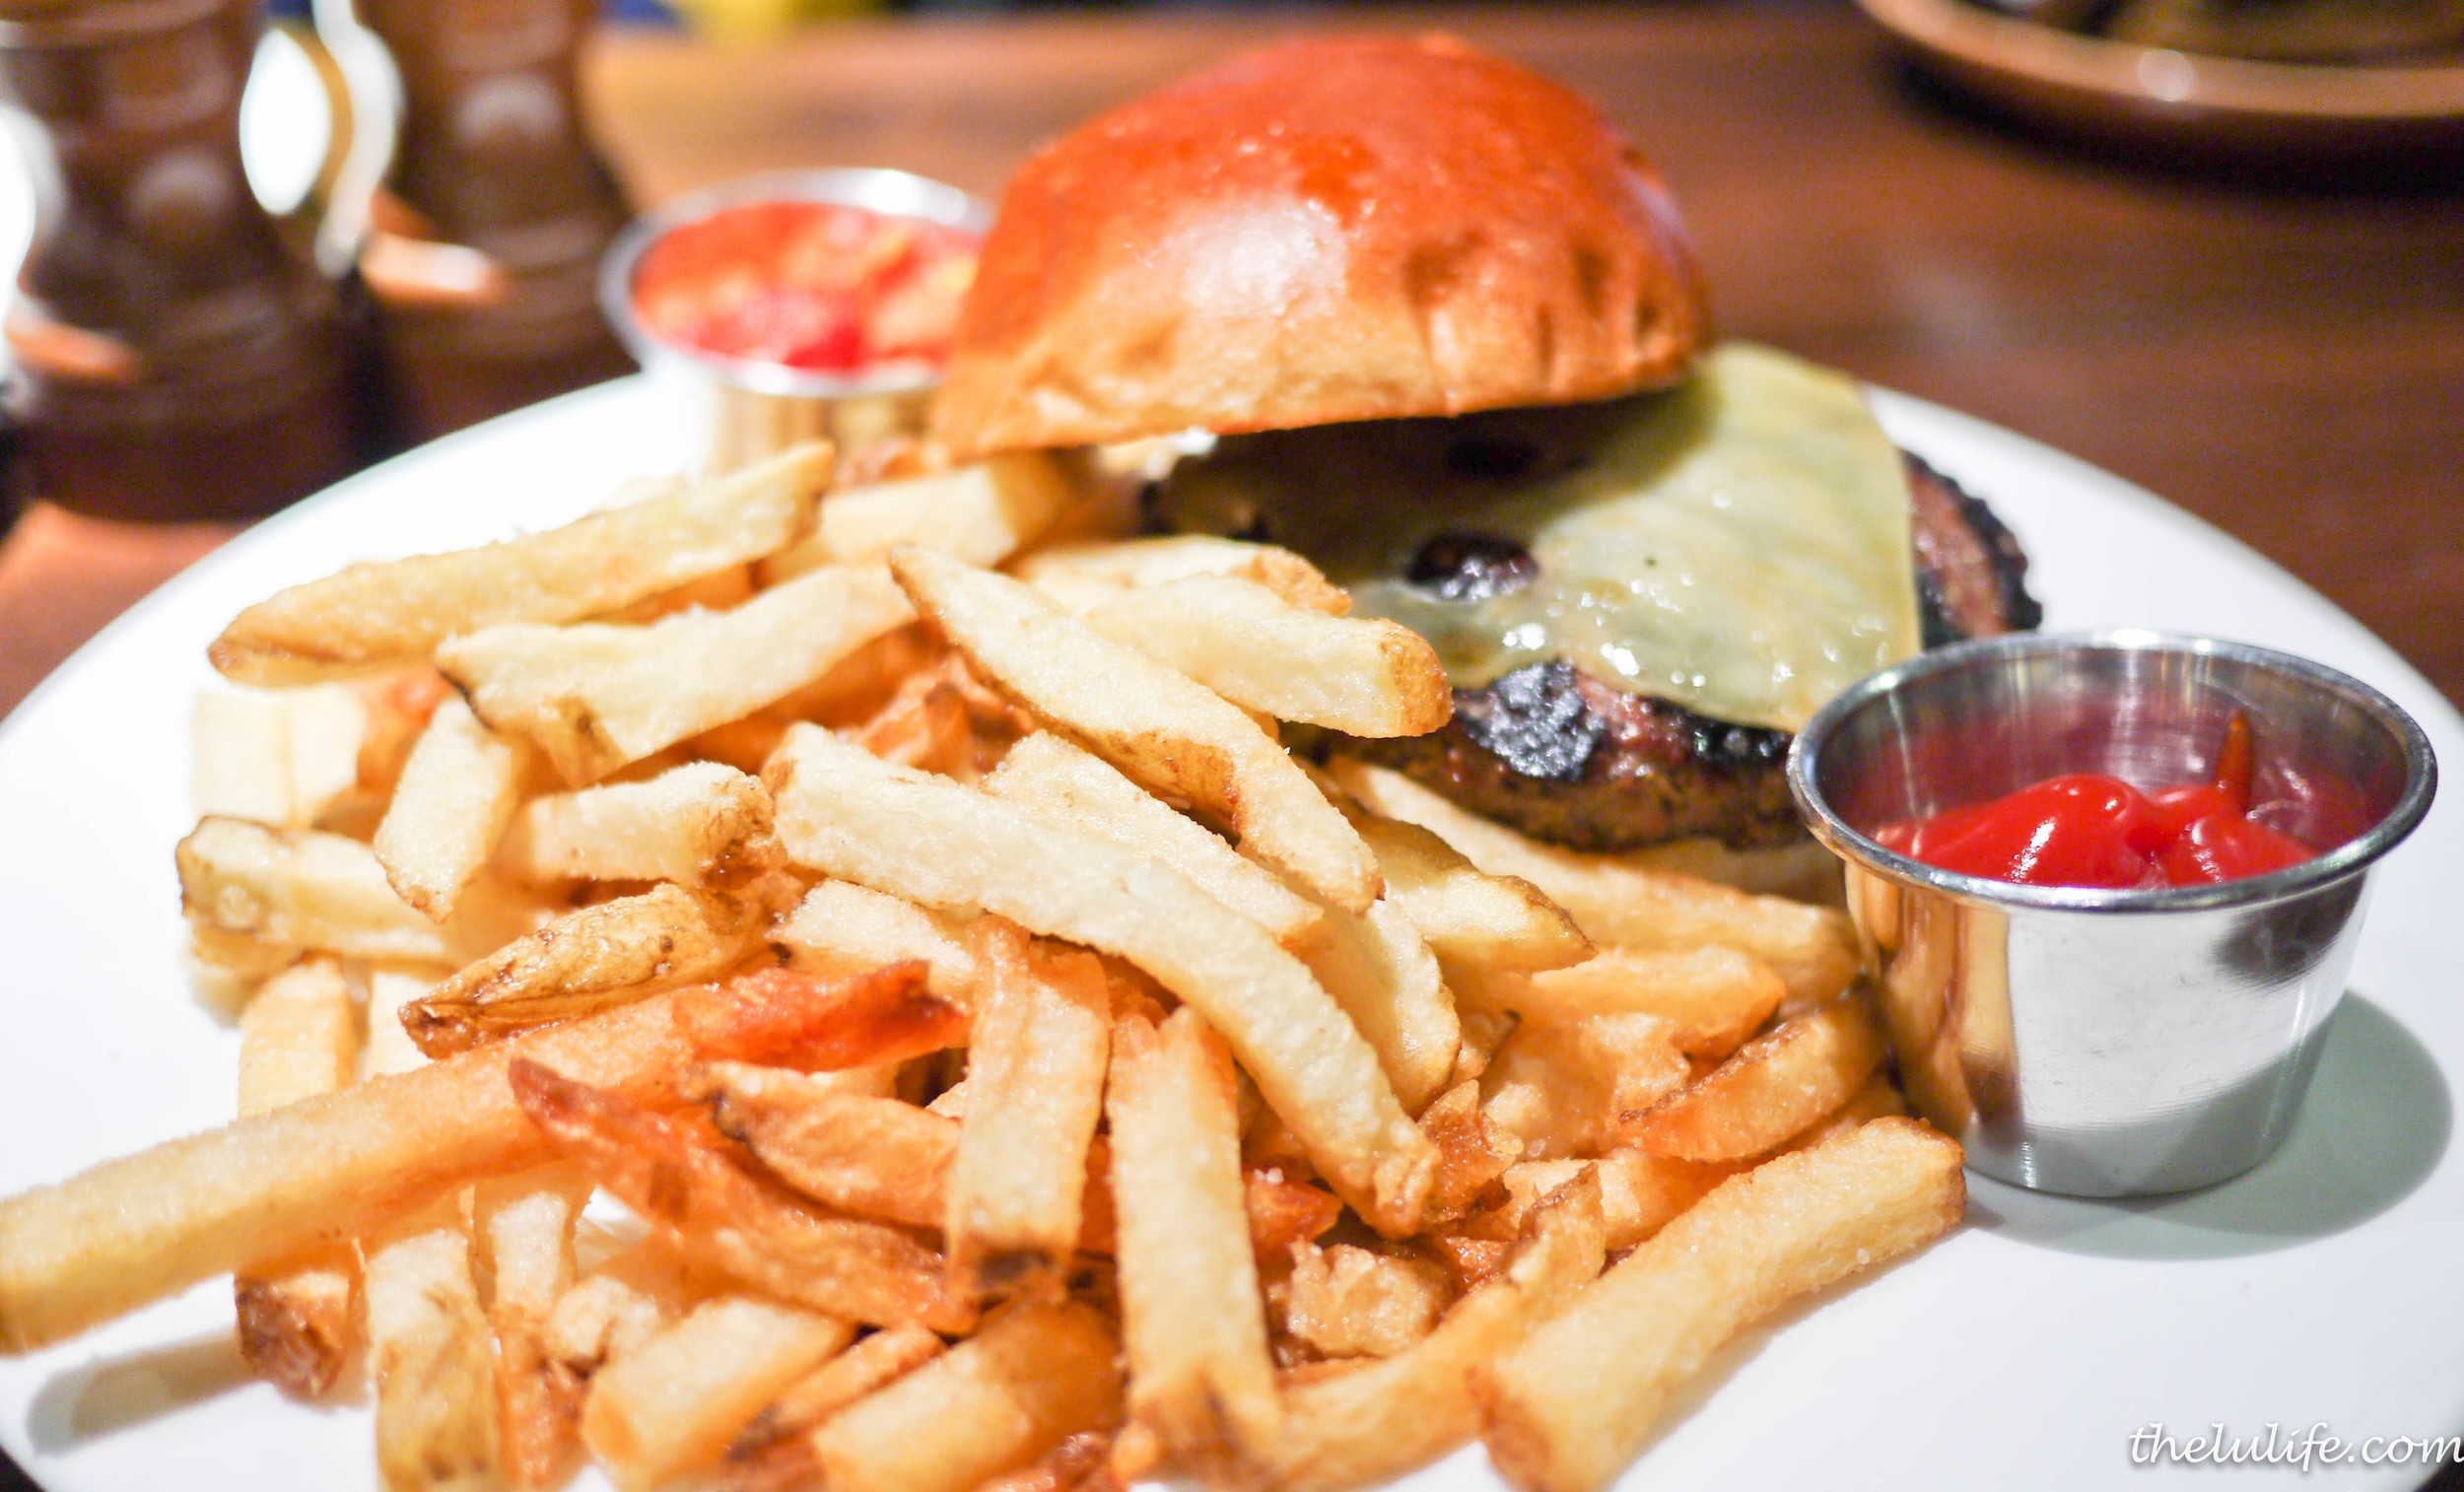 Prime burger - whole grain toast or classic bun, kennebec fries, house-made giardiniera, choice of aged white cheddar, wisconsin swiss or havarti